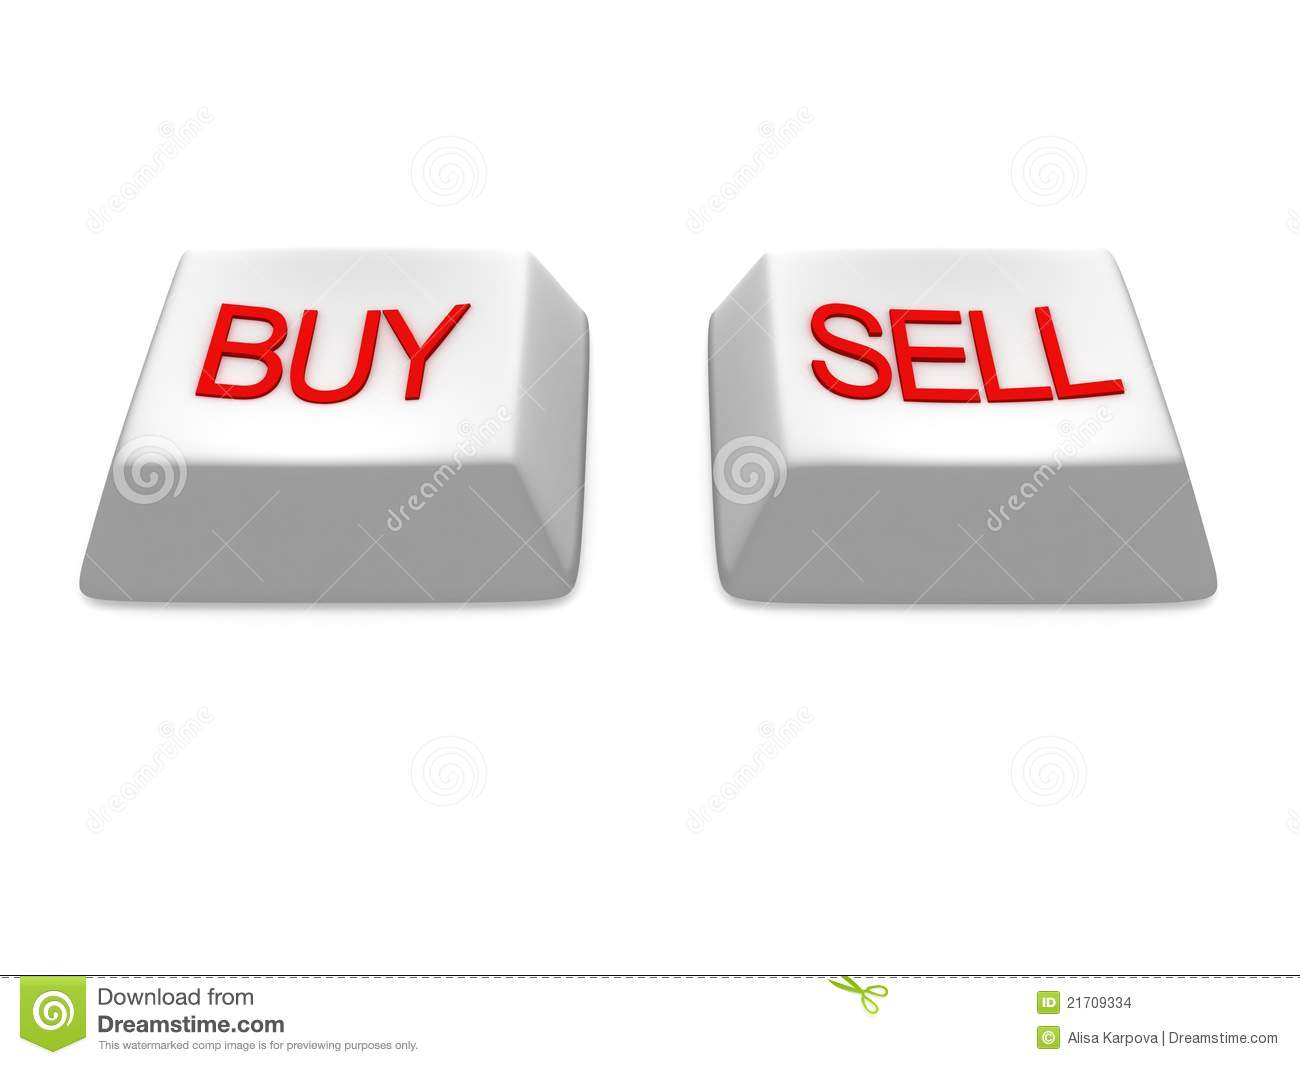 Buy And Sell White Buttons Keys Stock Images - Image: 21709334: dreamstime.com/stock-images-buy-sell-white-buttons-keys-image21709334